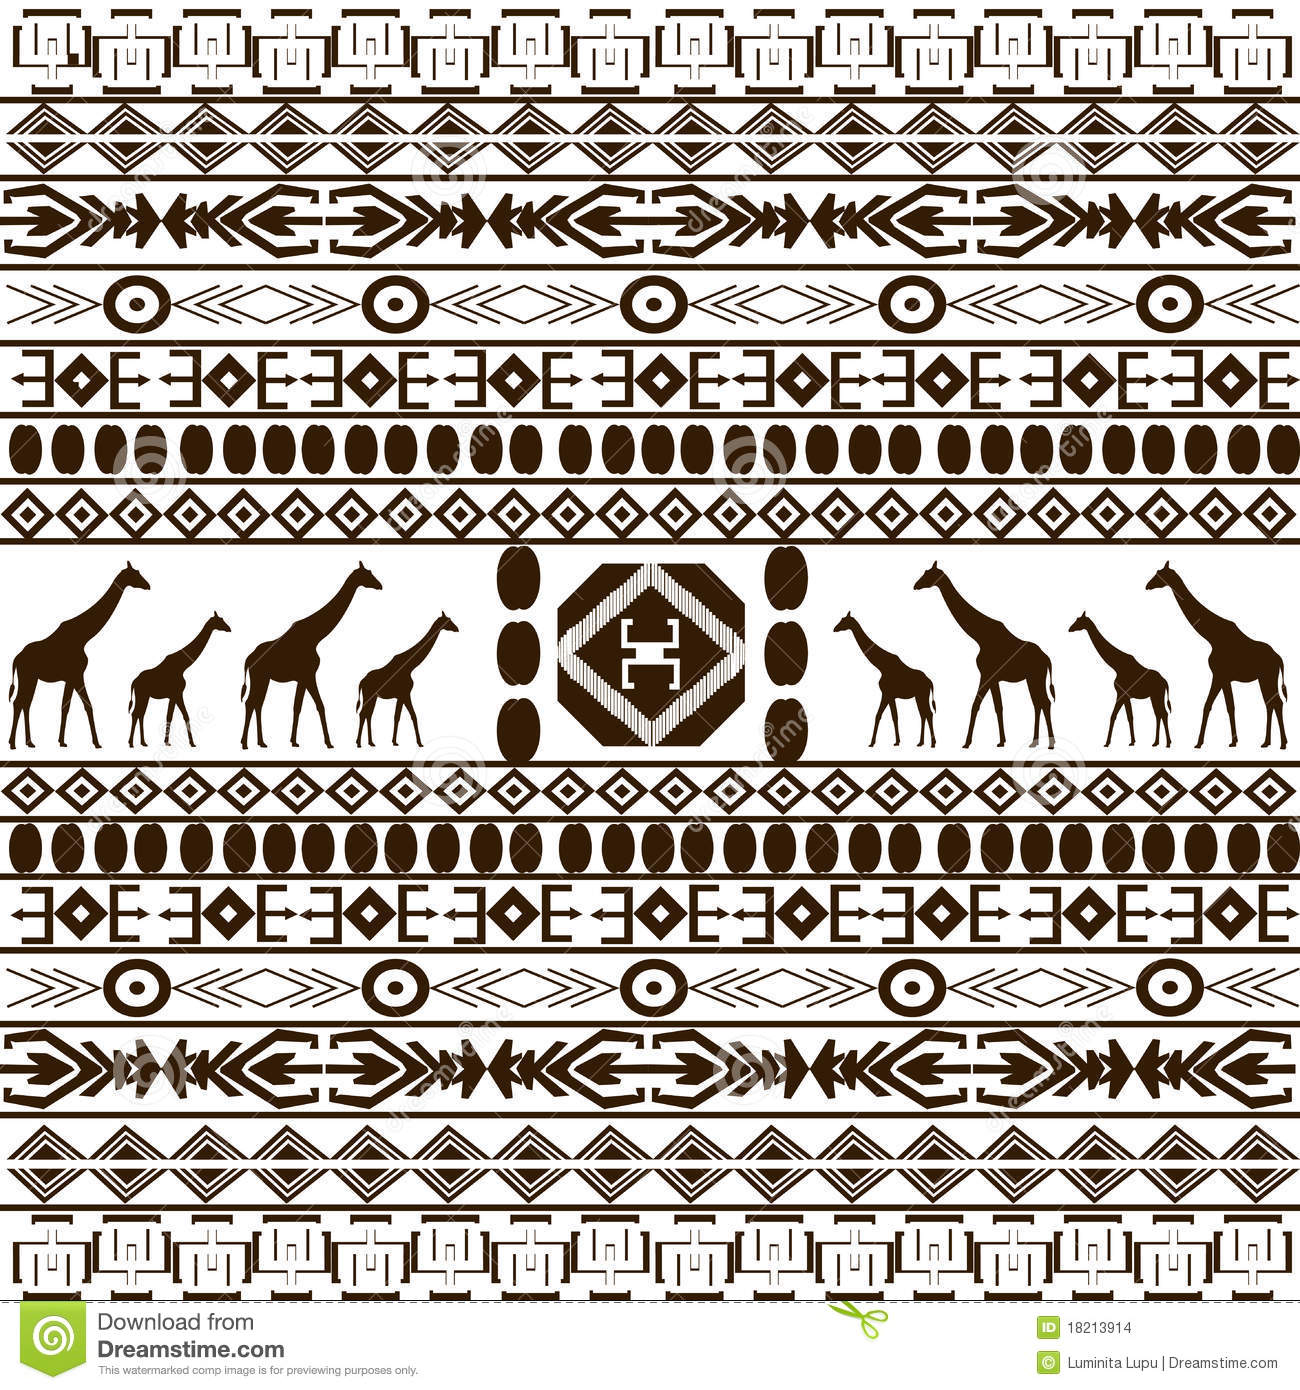 ... similar stock images of ` Traditional African pattern with giraffes